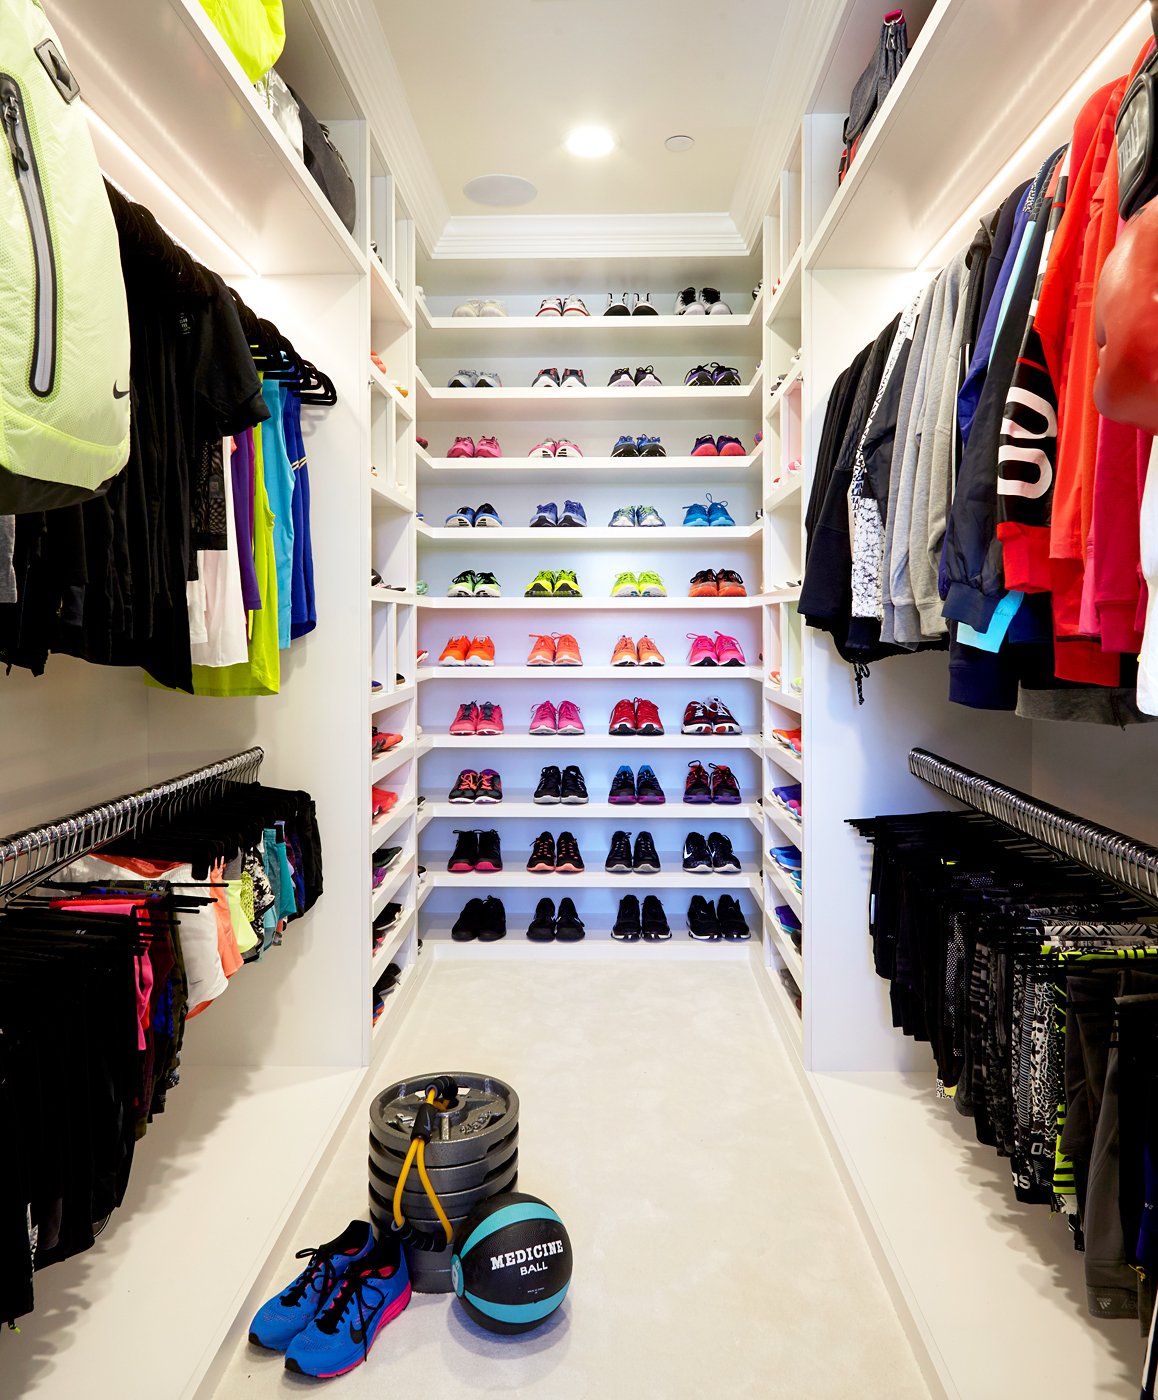 """Khloe Kardashian Has a """"Fitness Closet"""" With Almost Every Nike Product Imaginable — See the Enviable Space!"""